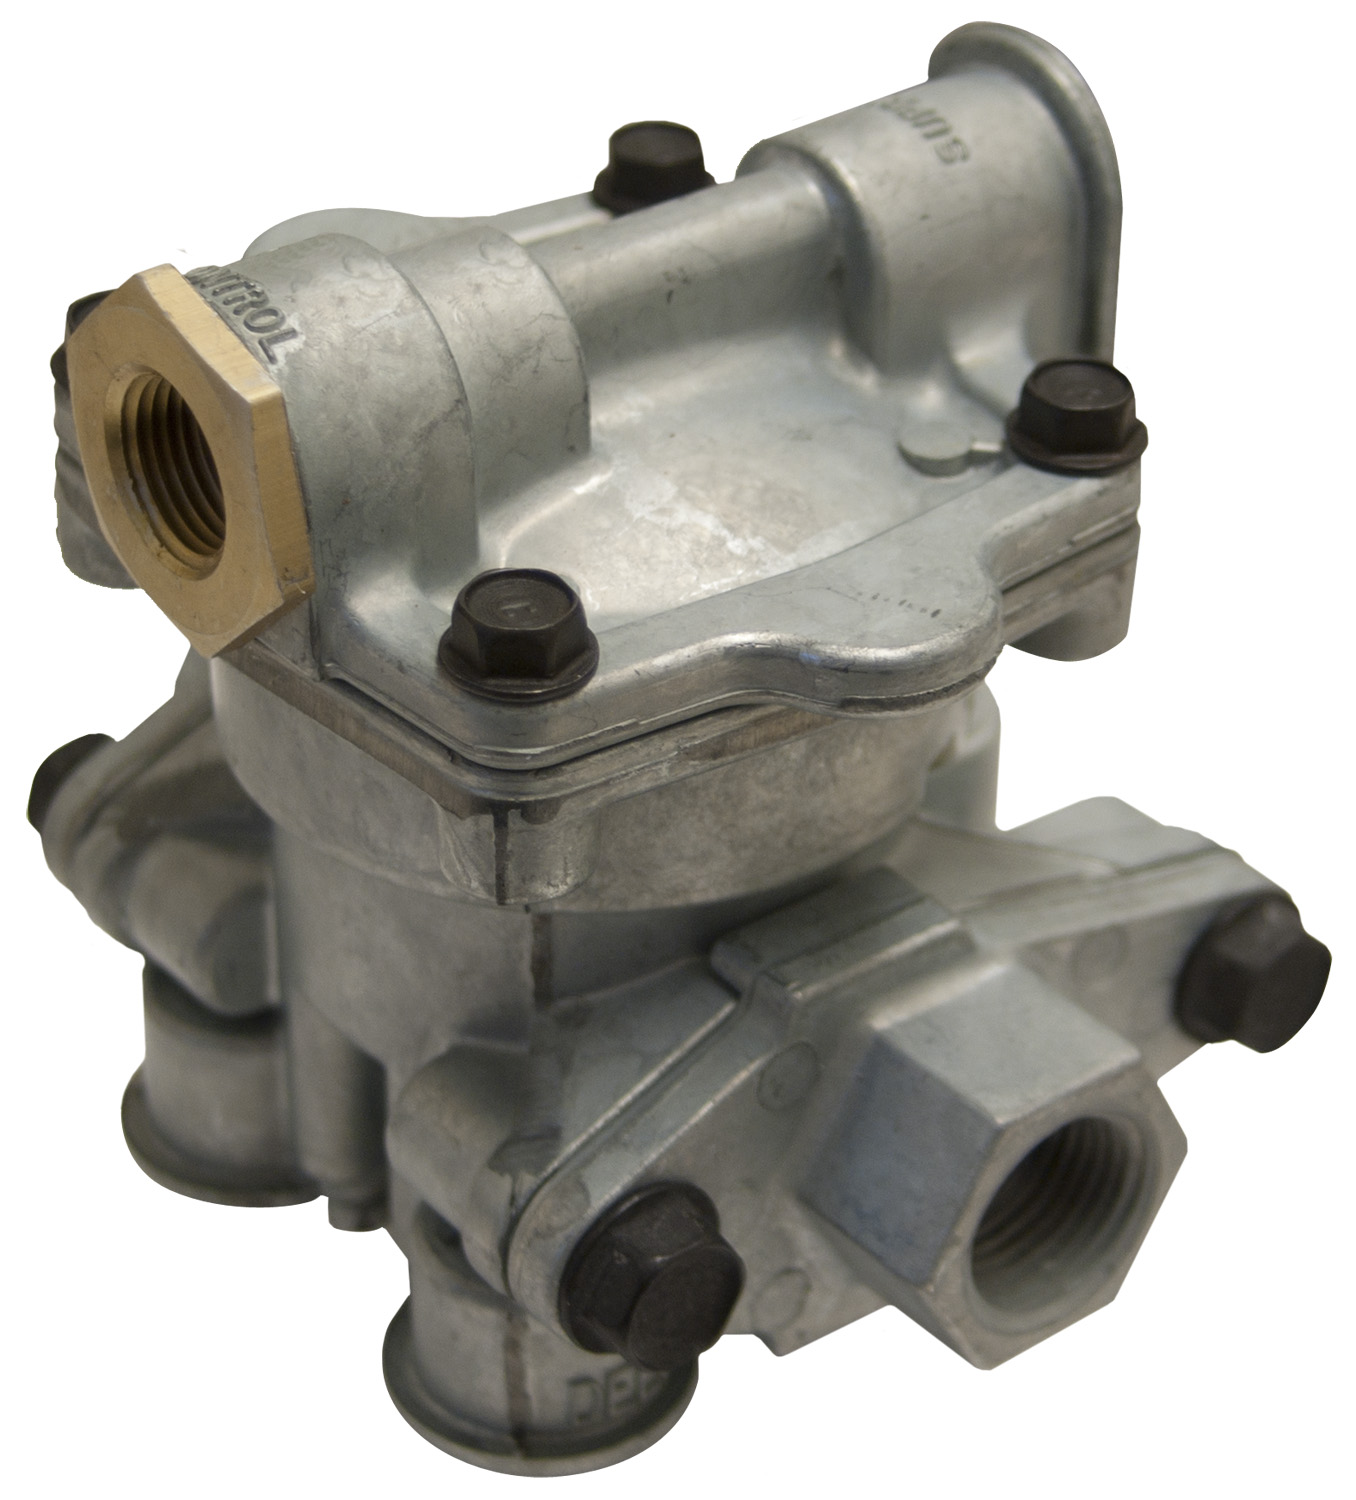 Trailers One Sealco Style 110415 Service Relay Valve for Trucks